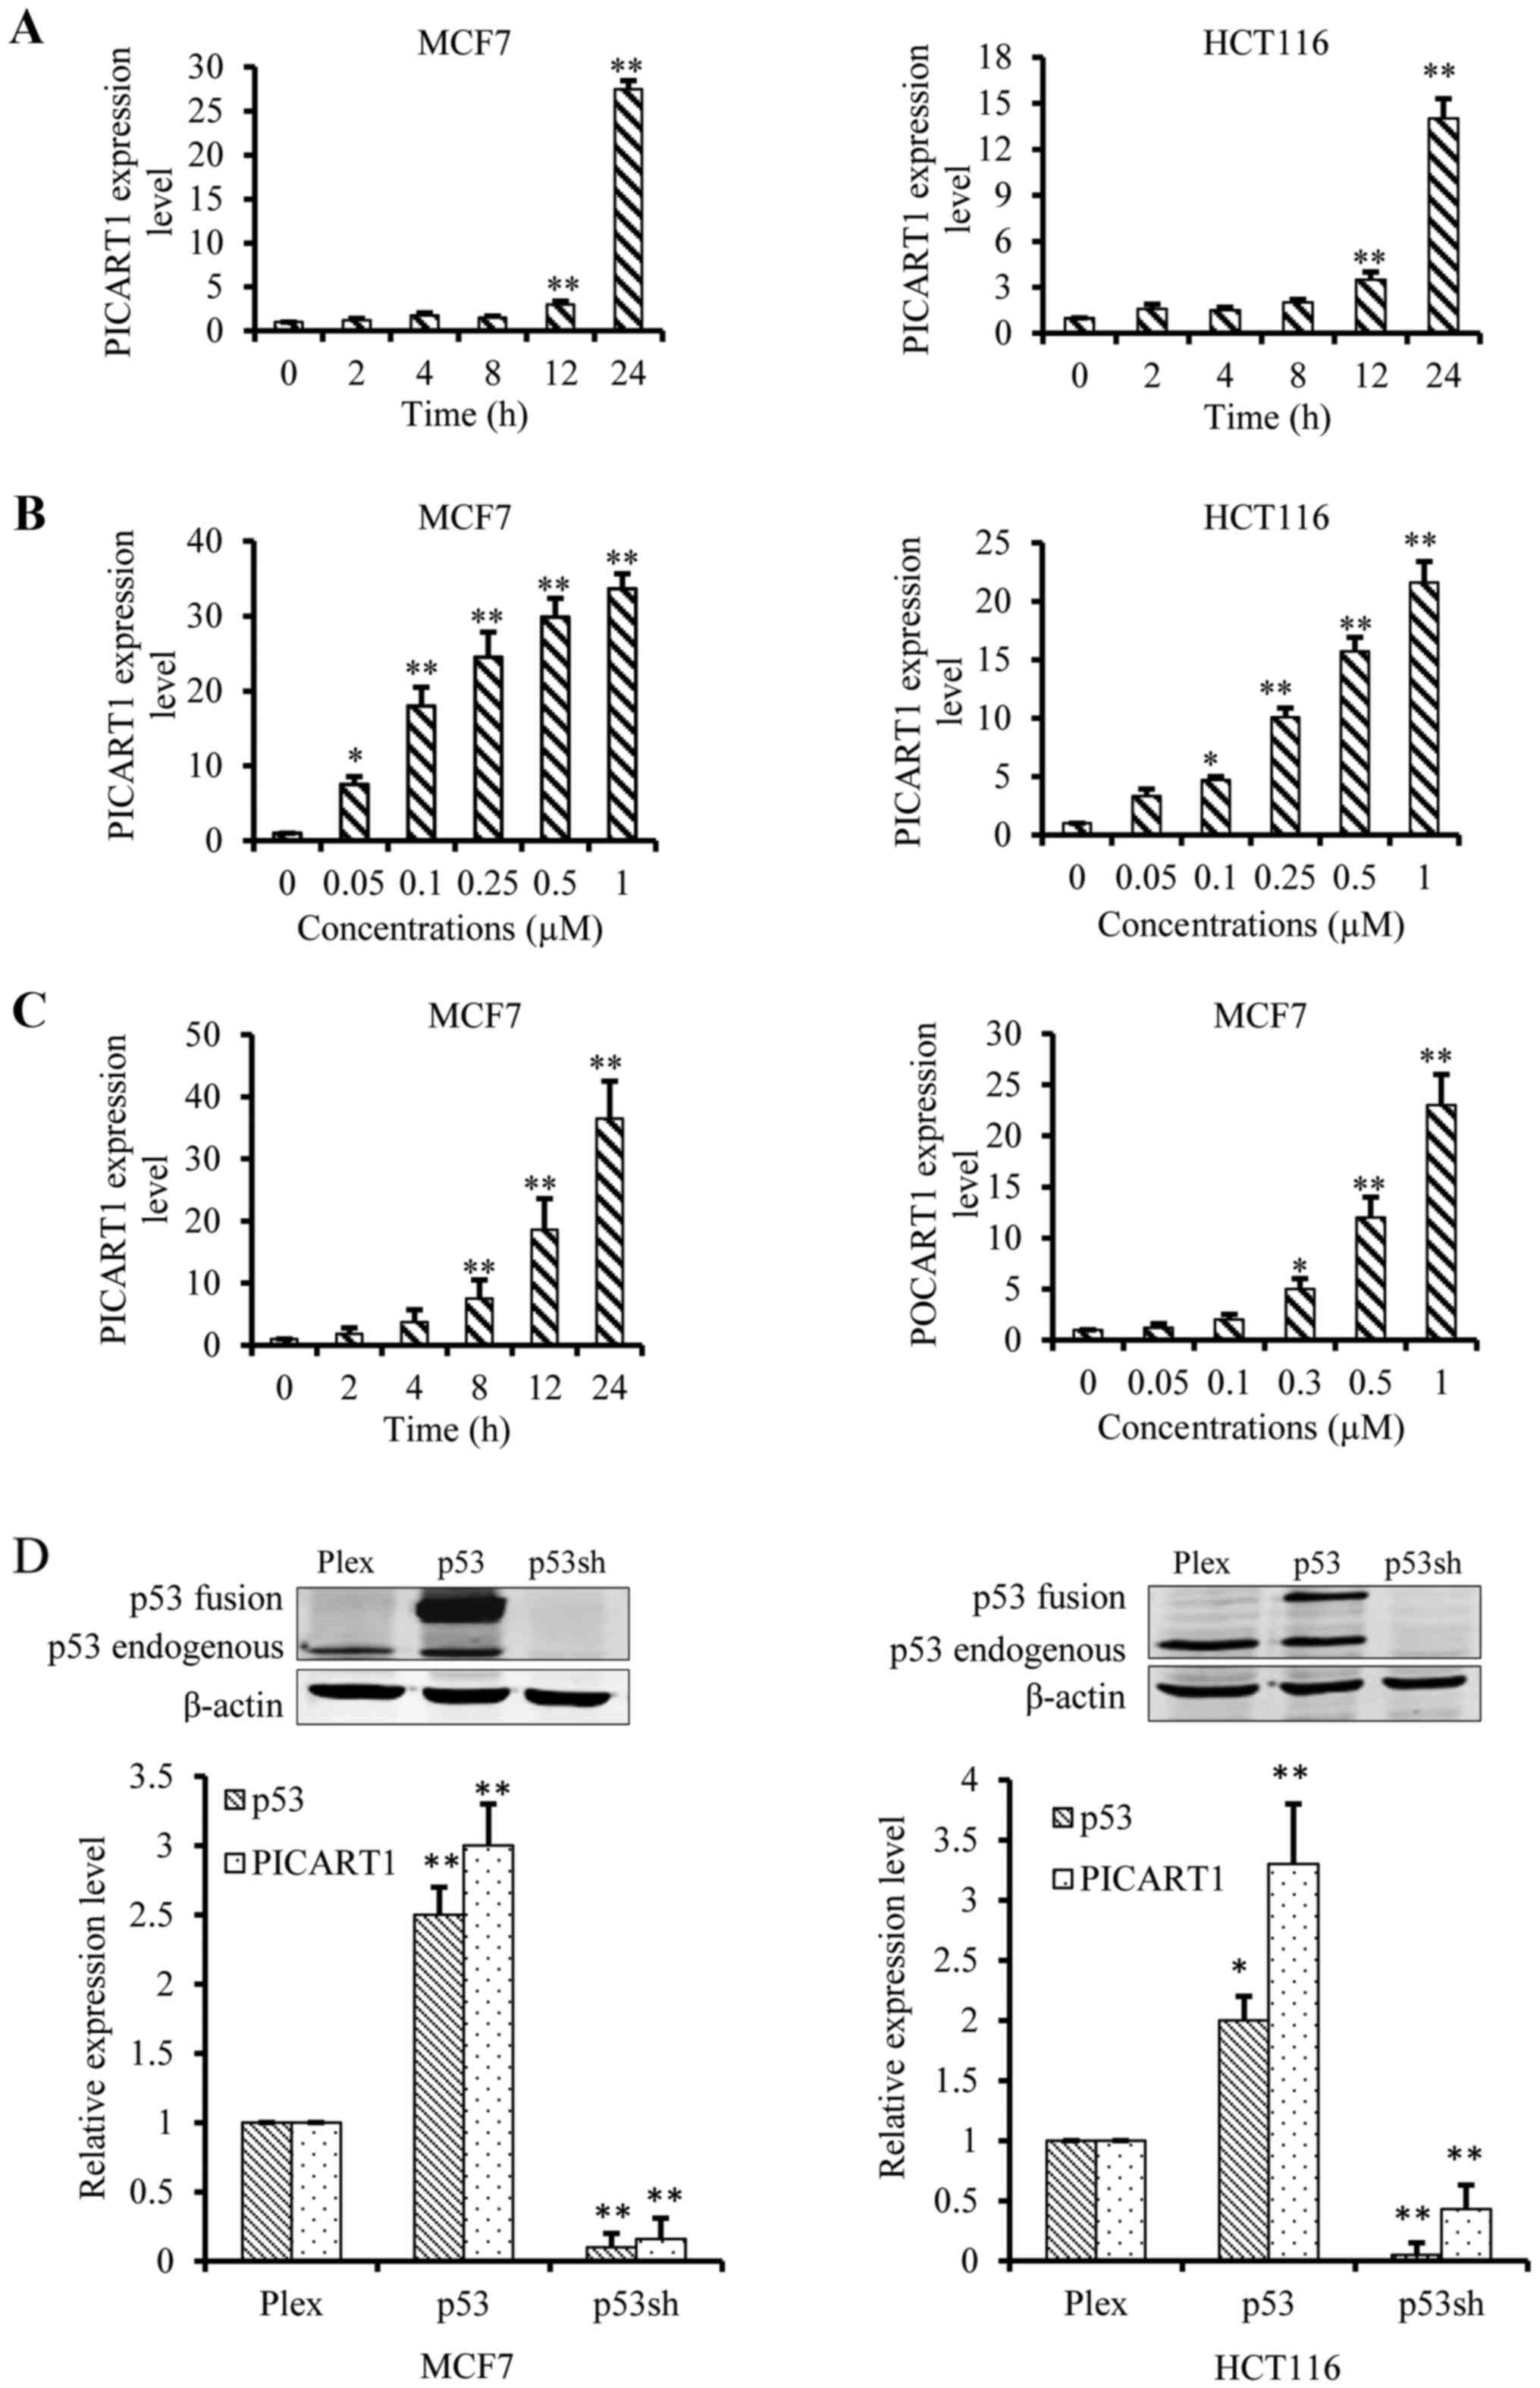 P53 Inducible Long Non Coding Rna Picart1 Mediates Cancer Cell H 261 Block Diagram Mcf7 And Hct116 Cells Were Treated With Rita At Indicated Concentrations For 24 C Time Dose Dependent Induction By Doxorubicin